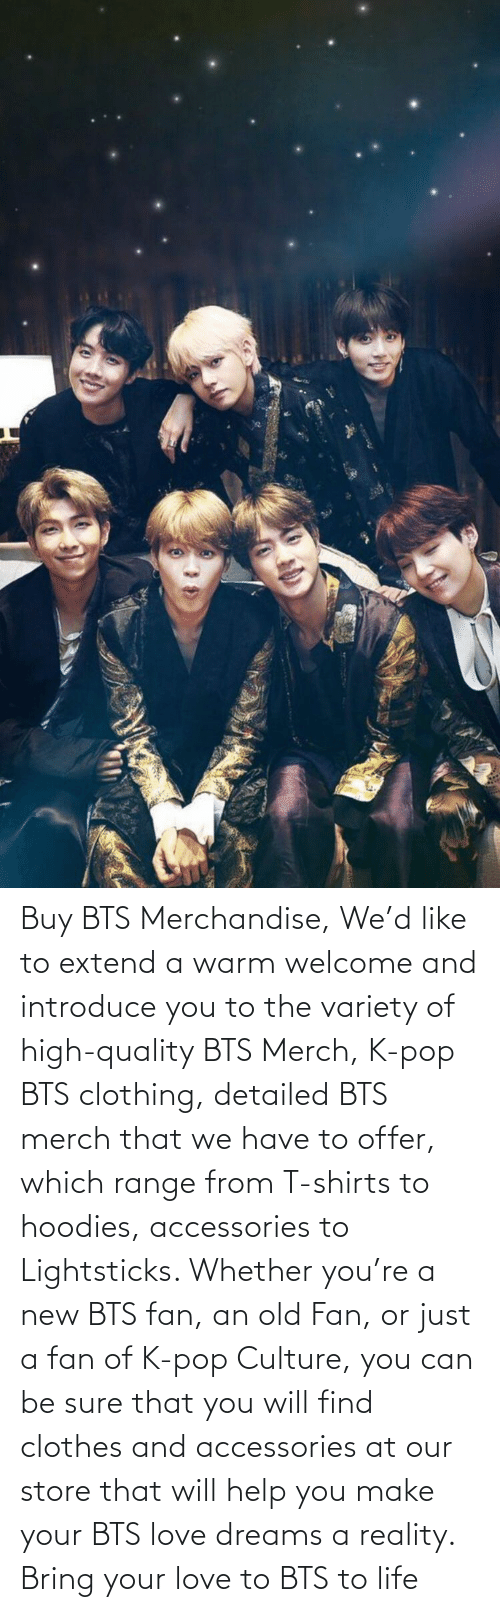 BTS: Buy BTS Merchandise, We'd like to extend a warm welcome and introduce you to the variety of high-quality BTS Merch, K-pop BTS clothing, detailed BTS merch that we have to offer, which range from T-shirts to hoodies, accessories to Lightsticks. Whether you're a new BTS fan, an old Fan, or just a fan of K-pop Culture, you can be sure that you will find clothes and accessories at our store that will help you make your BTS love dreams a reality. Bring your love to BTS to life